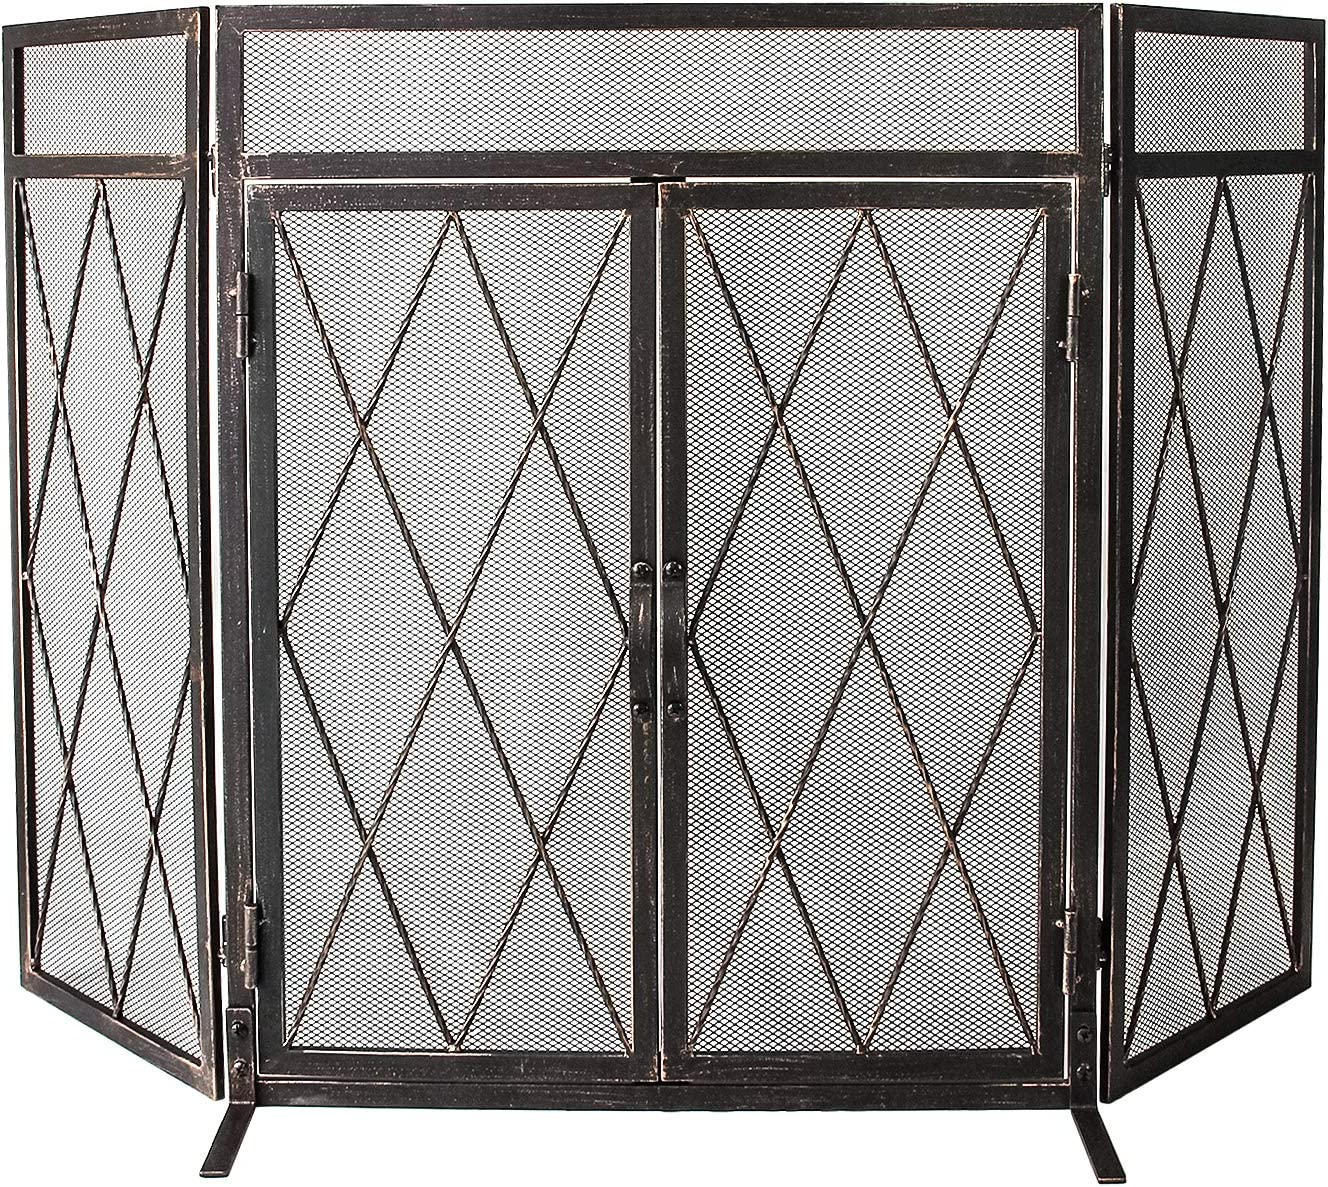 "WBHome 3 Panel Wrought Iron Fireplace Screen with Doors Large Flat Guard Metal Decorative Mesh Cover Baby Safe Proof Firewood Burning Stove Accessories (50"" L x 32"" H x 9.5"" W)"